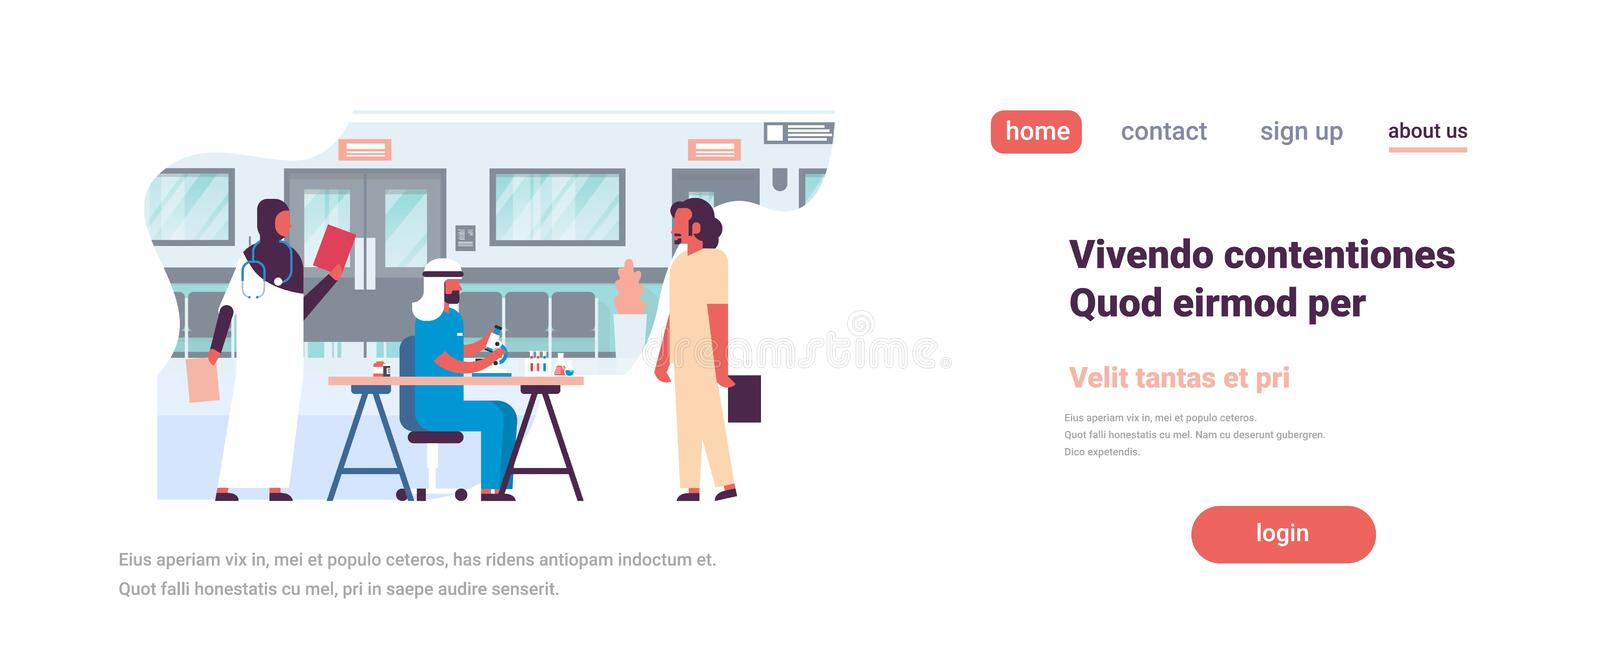 Group arab woman man doctors stethoscope hospital communication diverse arabic medical workers flat full length copy royalty free illustration